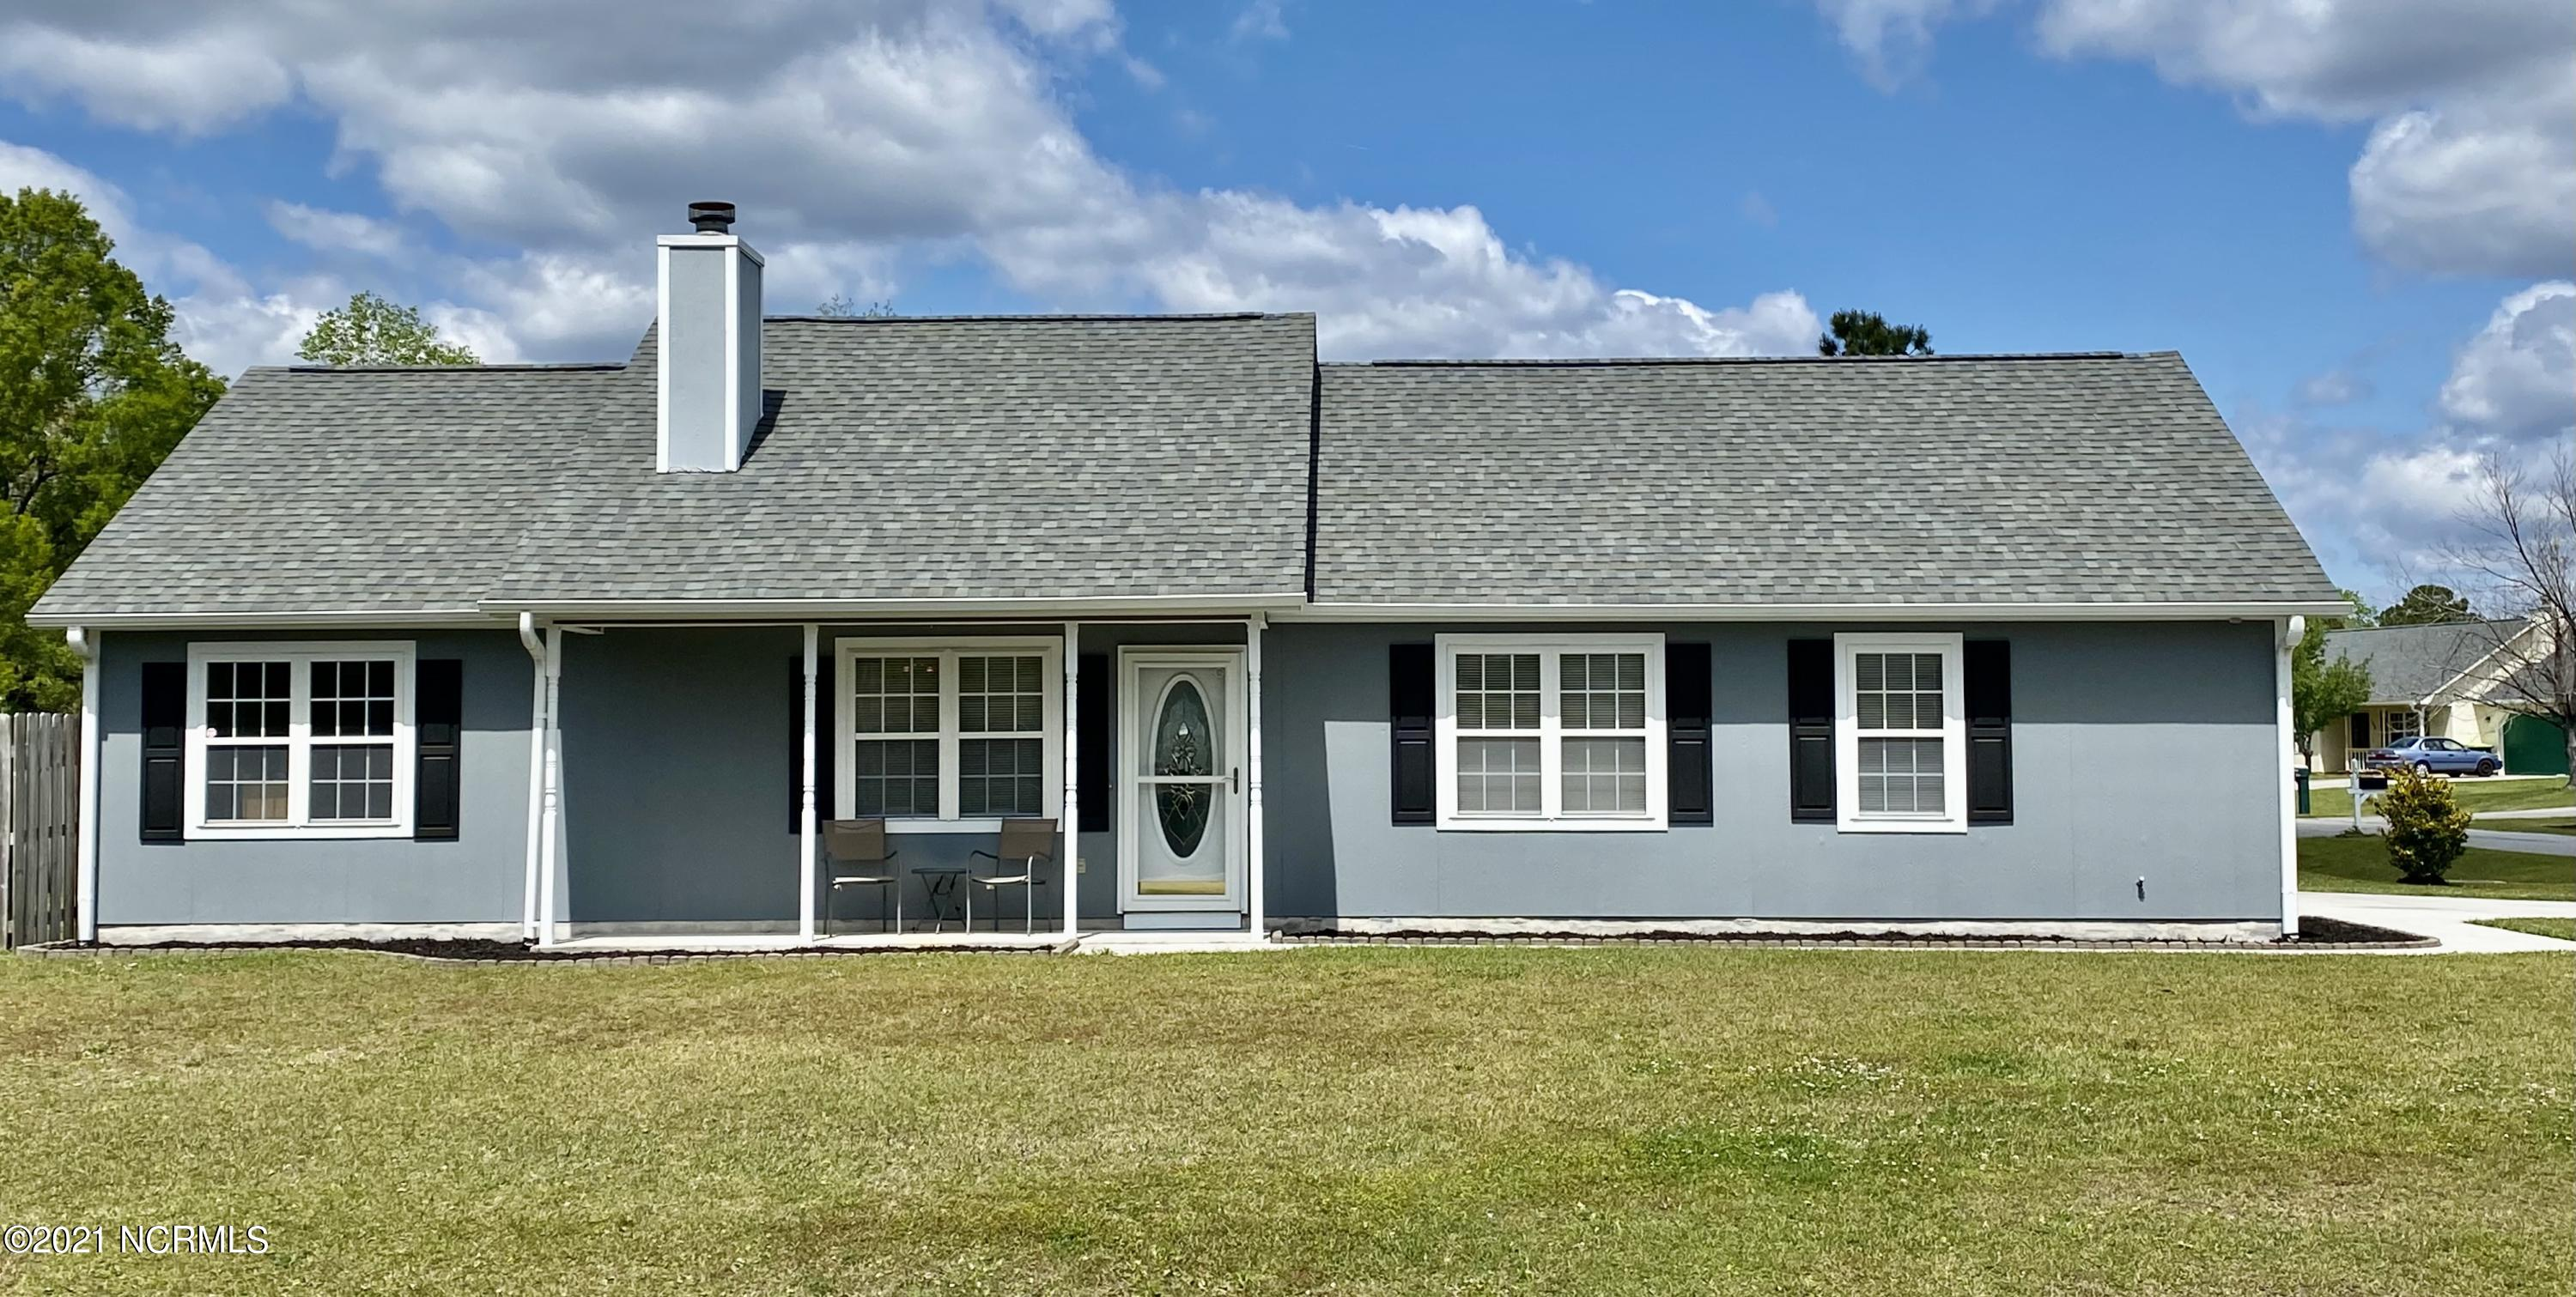 Impeccably maintained home in the Foxtrace Subdivision.  This 3 Bedroom, 2 Bath split-level home features fresh paint throughout, hardwood floors, wood-burning fireplace, and a fully fenced in back yard with a large storage shed.  Conveniently located near the back gate of Camp Lejeune and only minutes to local beaches.